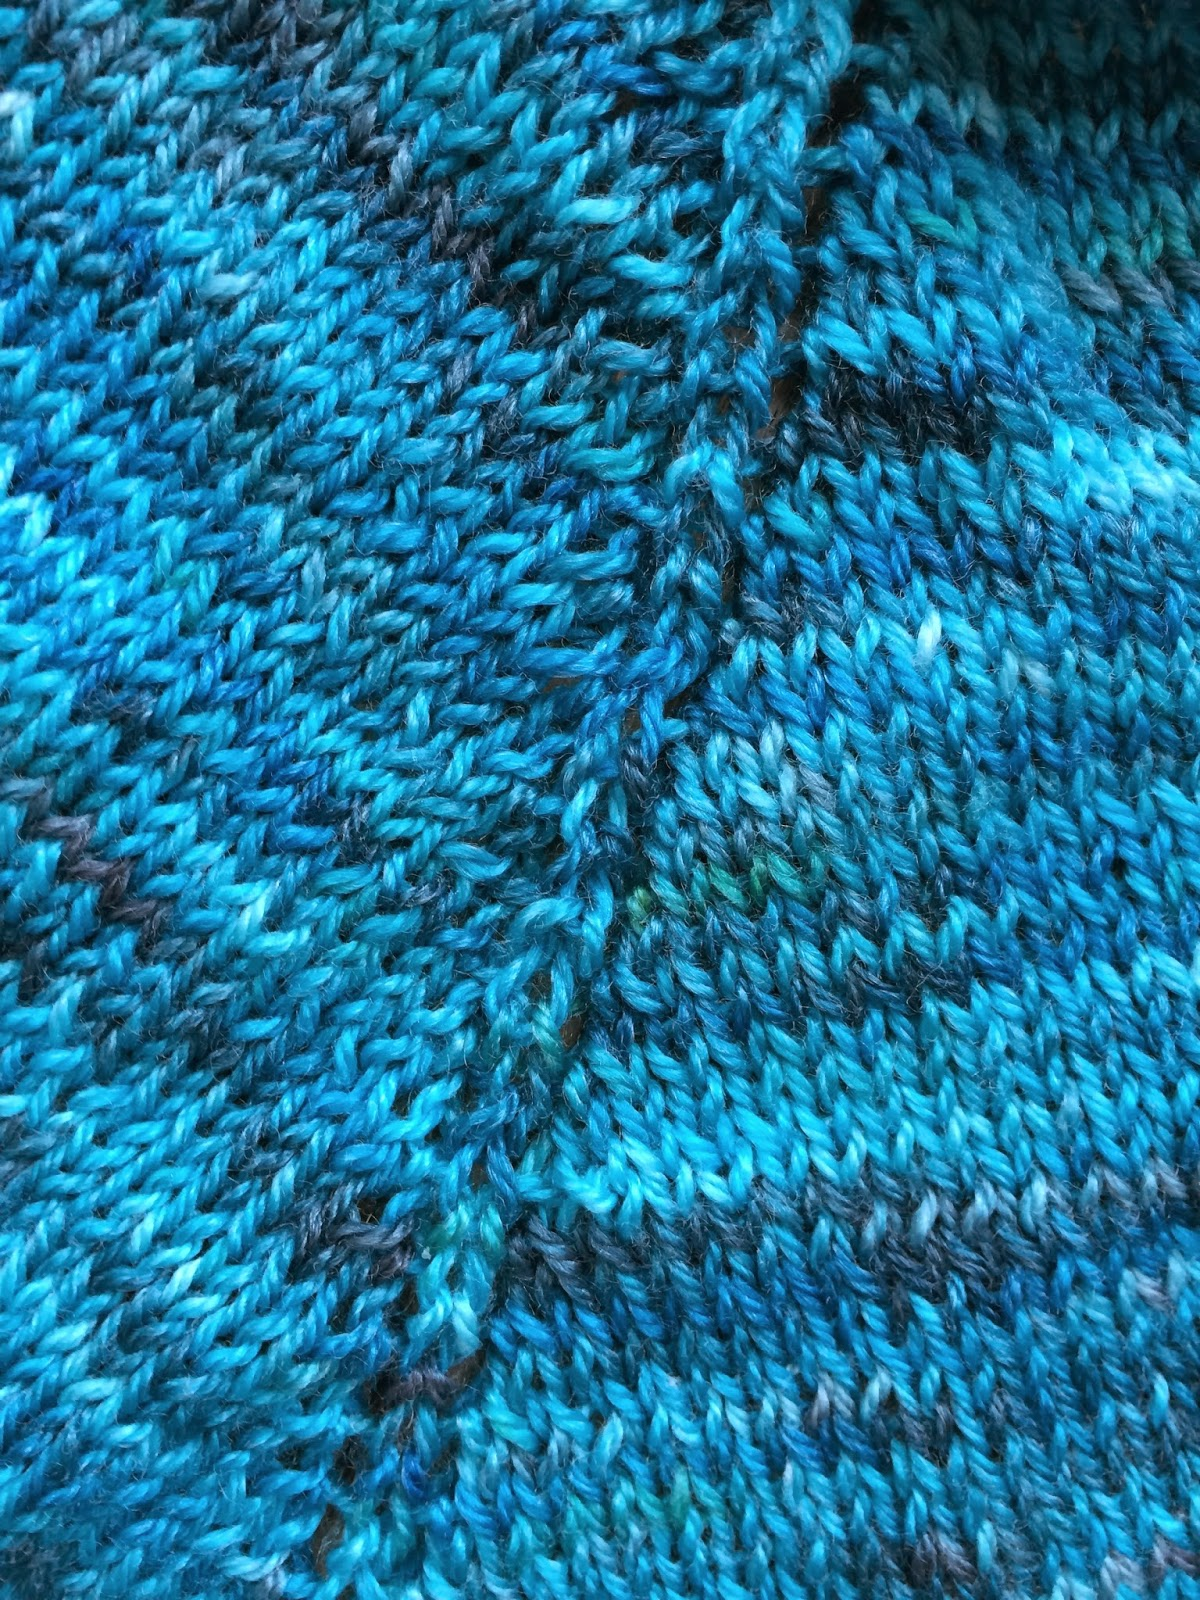 Holden Shawlette from The Artful Yarn - Day 1 9